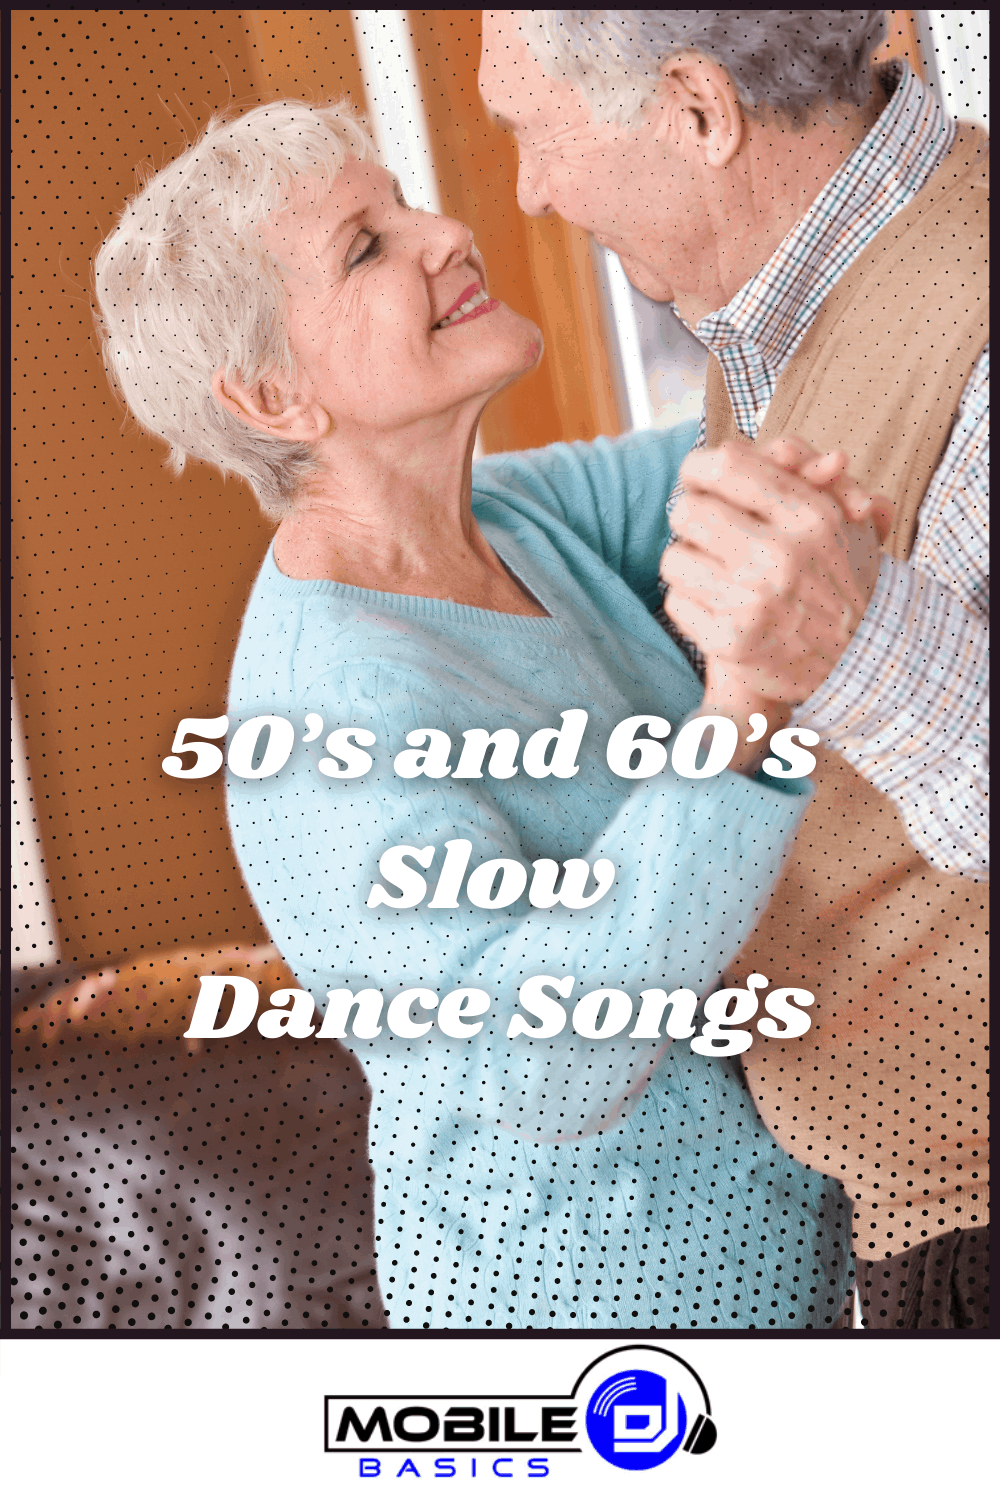 50's and 60's Slow Dance Songs